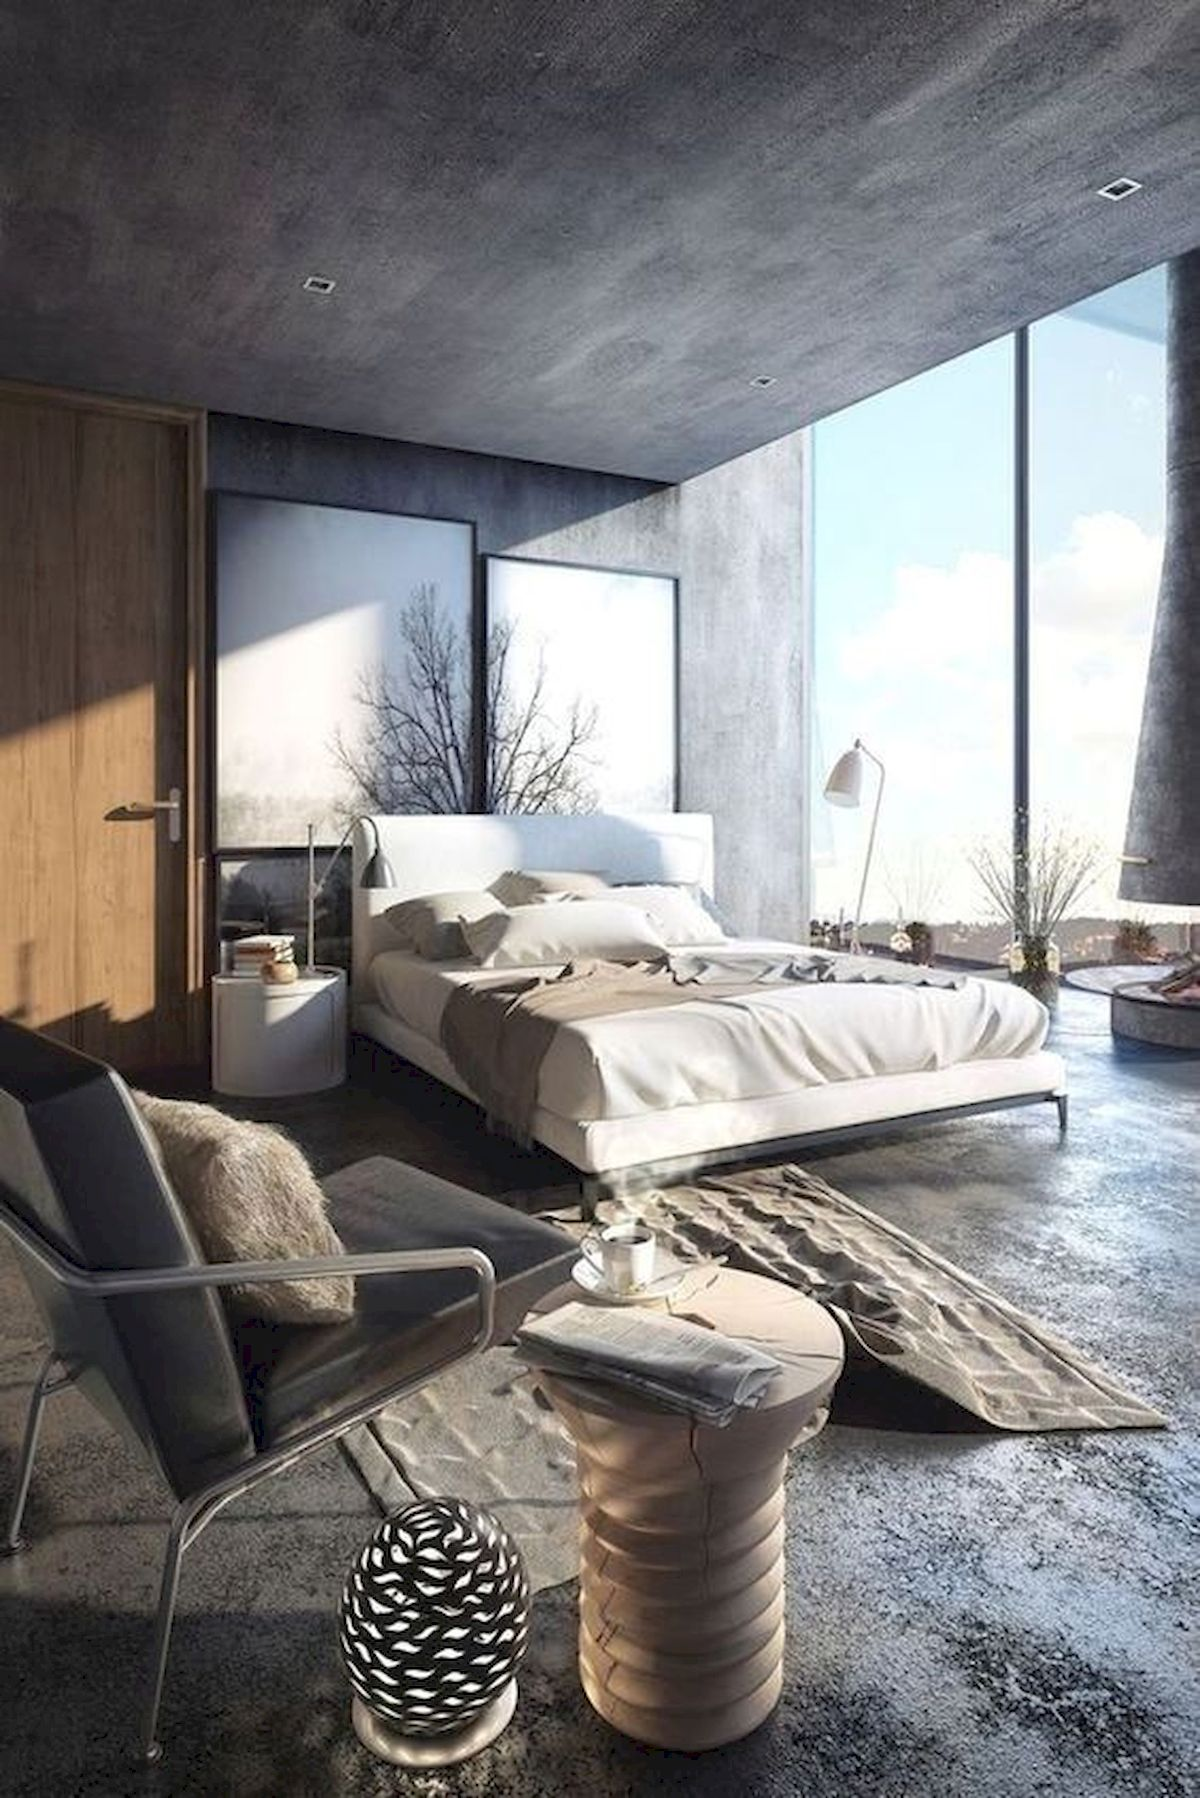 40 Incredible Modern Bedroom Design Ideas That Will Be Relax Place (19)